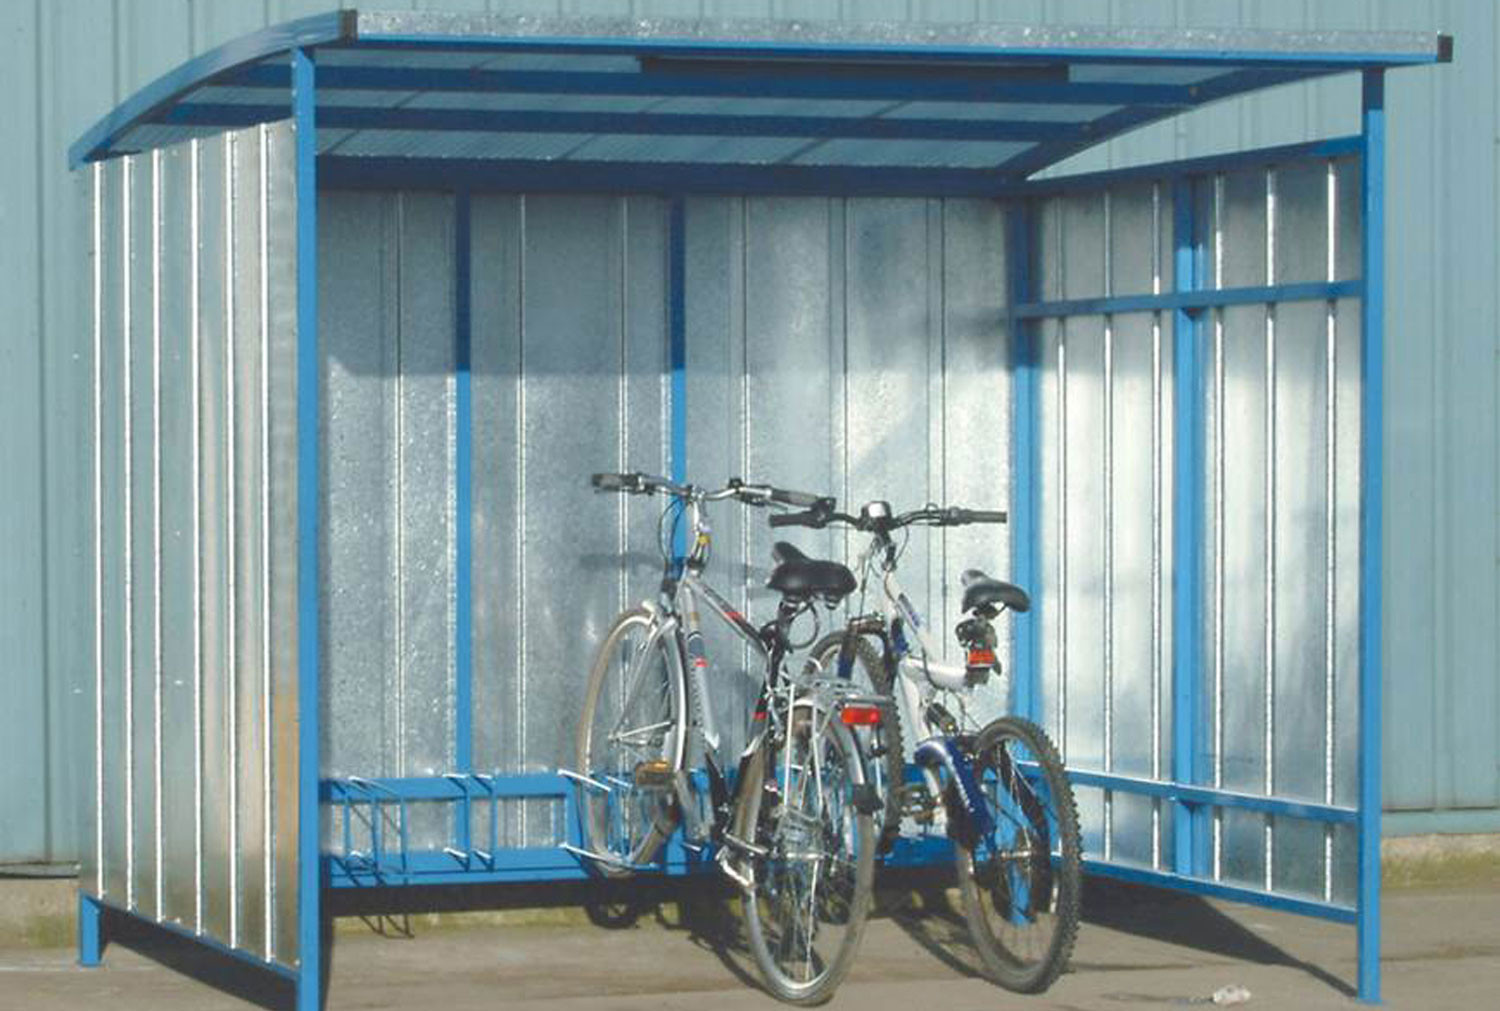 Industrial Cycle Shelter (7 Bikes)